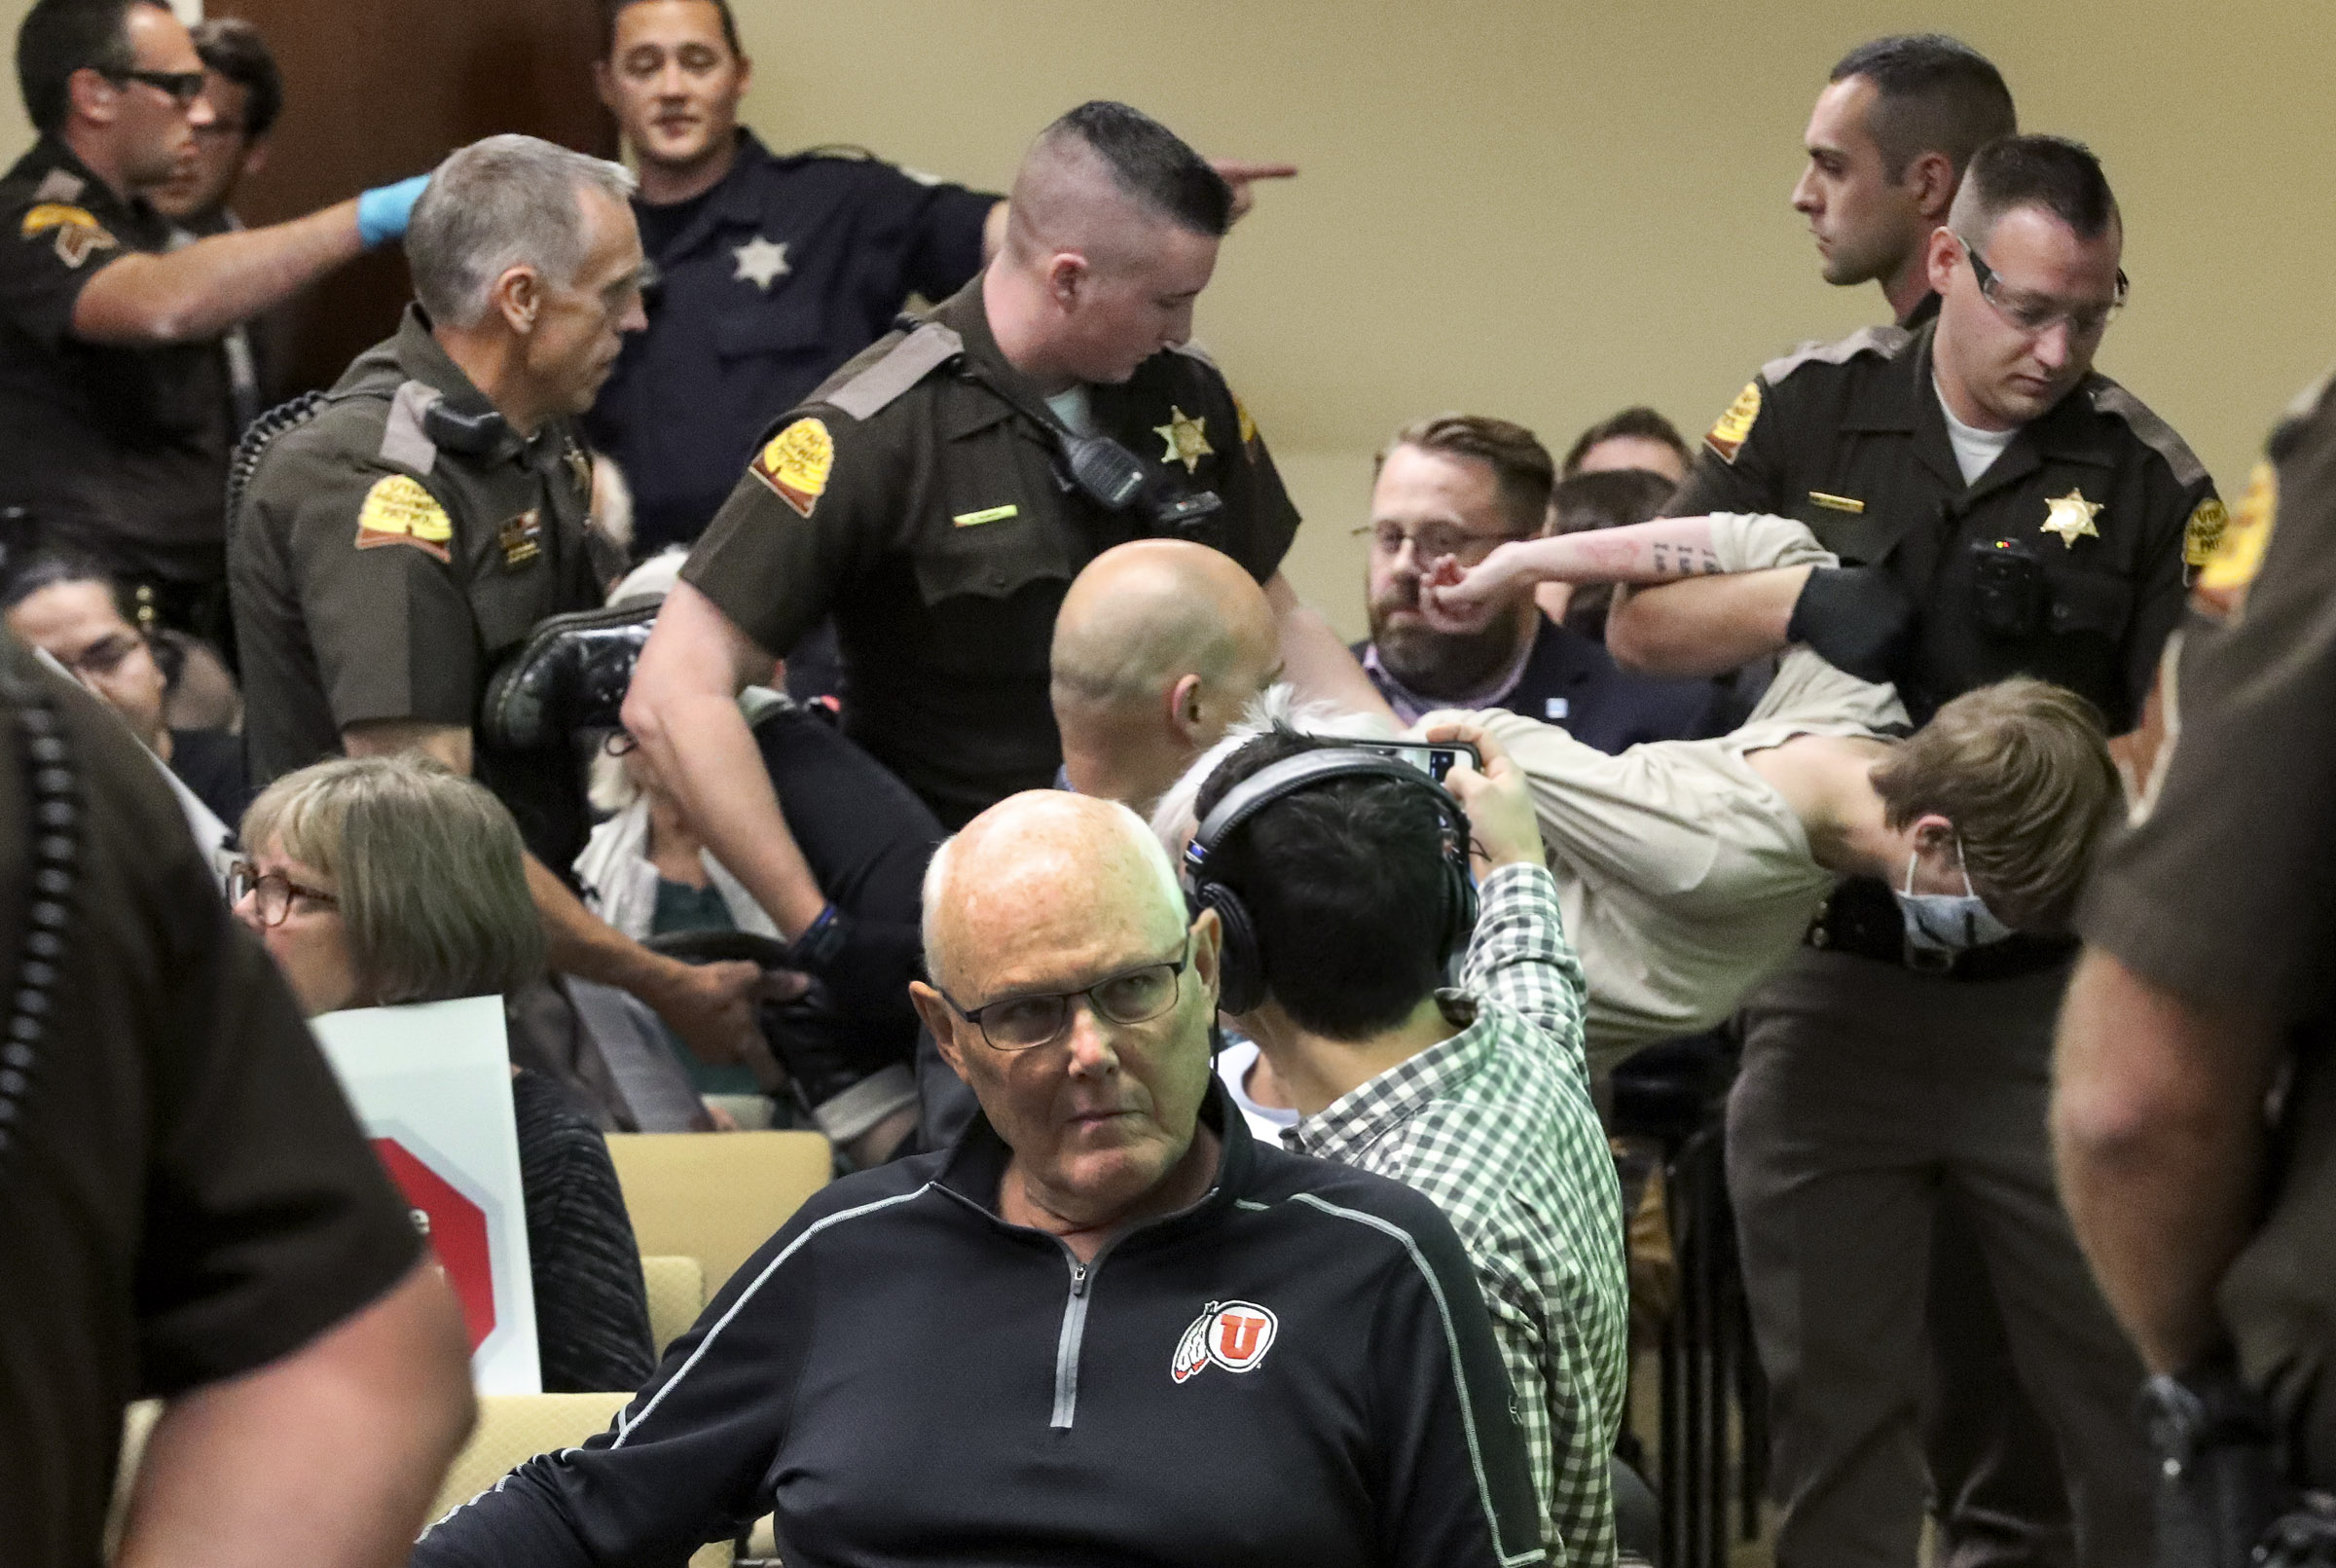 Utah Highway Patrol troopers remove a woman who was blowing a whistle through a surgical mask and disrupting the Utah Inland Port Authority Board meeting at the Capitol in Salt Lake City on Thursday, Oct. 17, 2019.